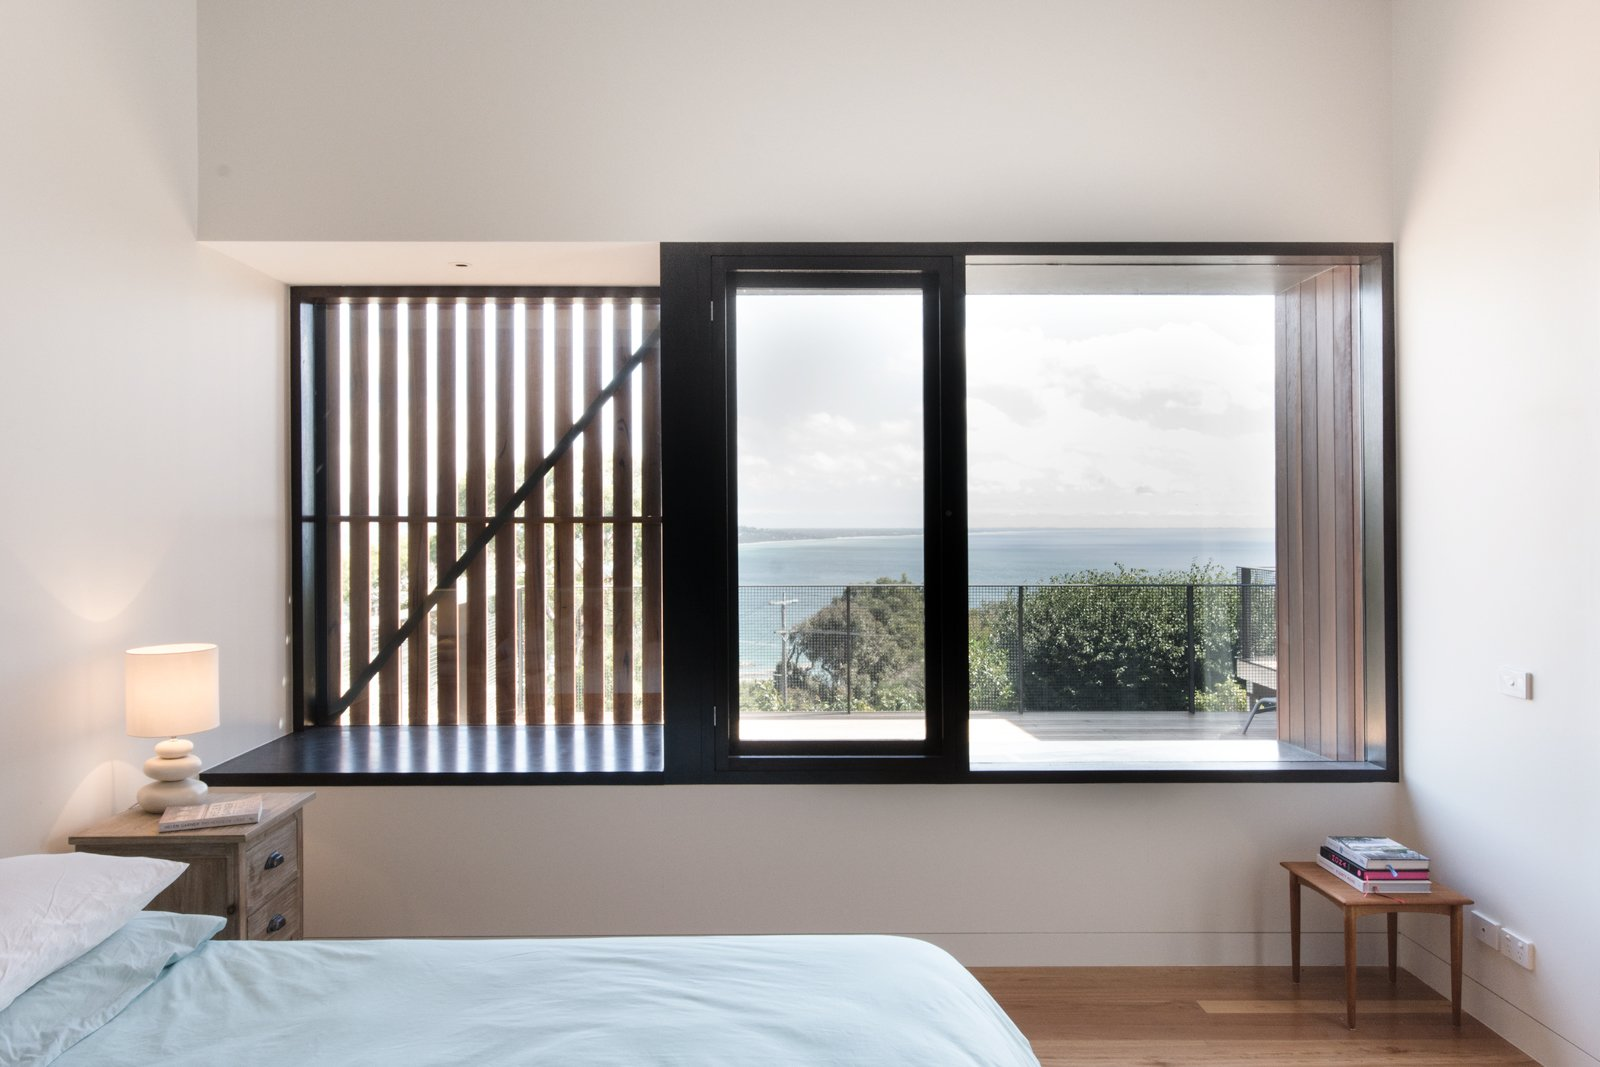 """External shutters and screens allow the homeowners to manage the sunlight and cross ventilation in certain rooms. Manos Mavridis, also of OLA Studio, explains, """"There was a preference for the screens to be manually operated to minimize ongoing maintenance costs and encourage user engagement with their environment."""" An Australian Beach Home with Stunning Ocean Views - Photo 8 of 8"""